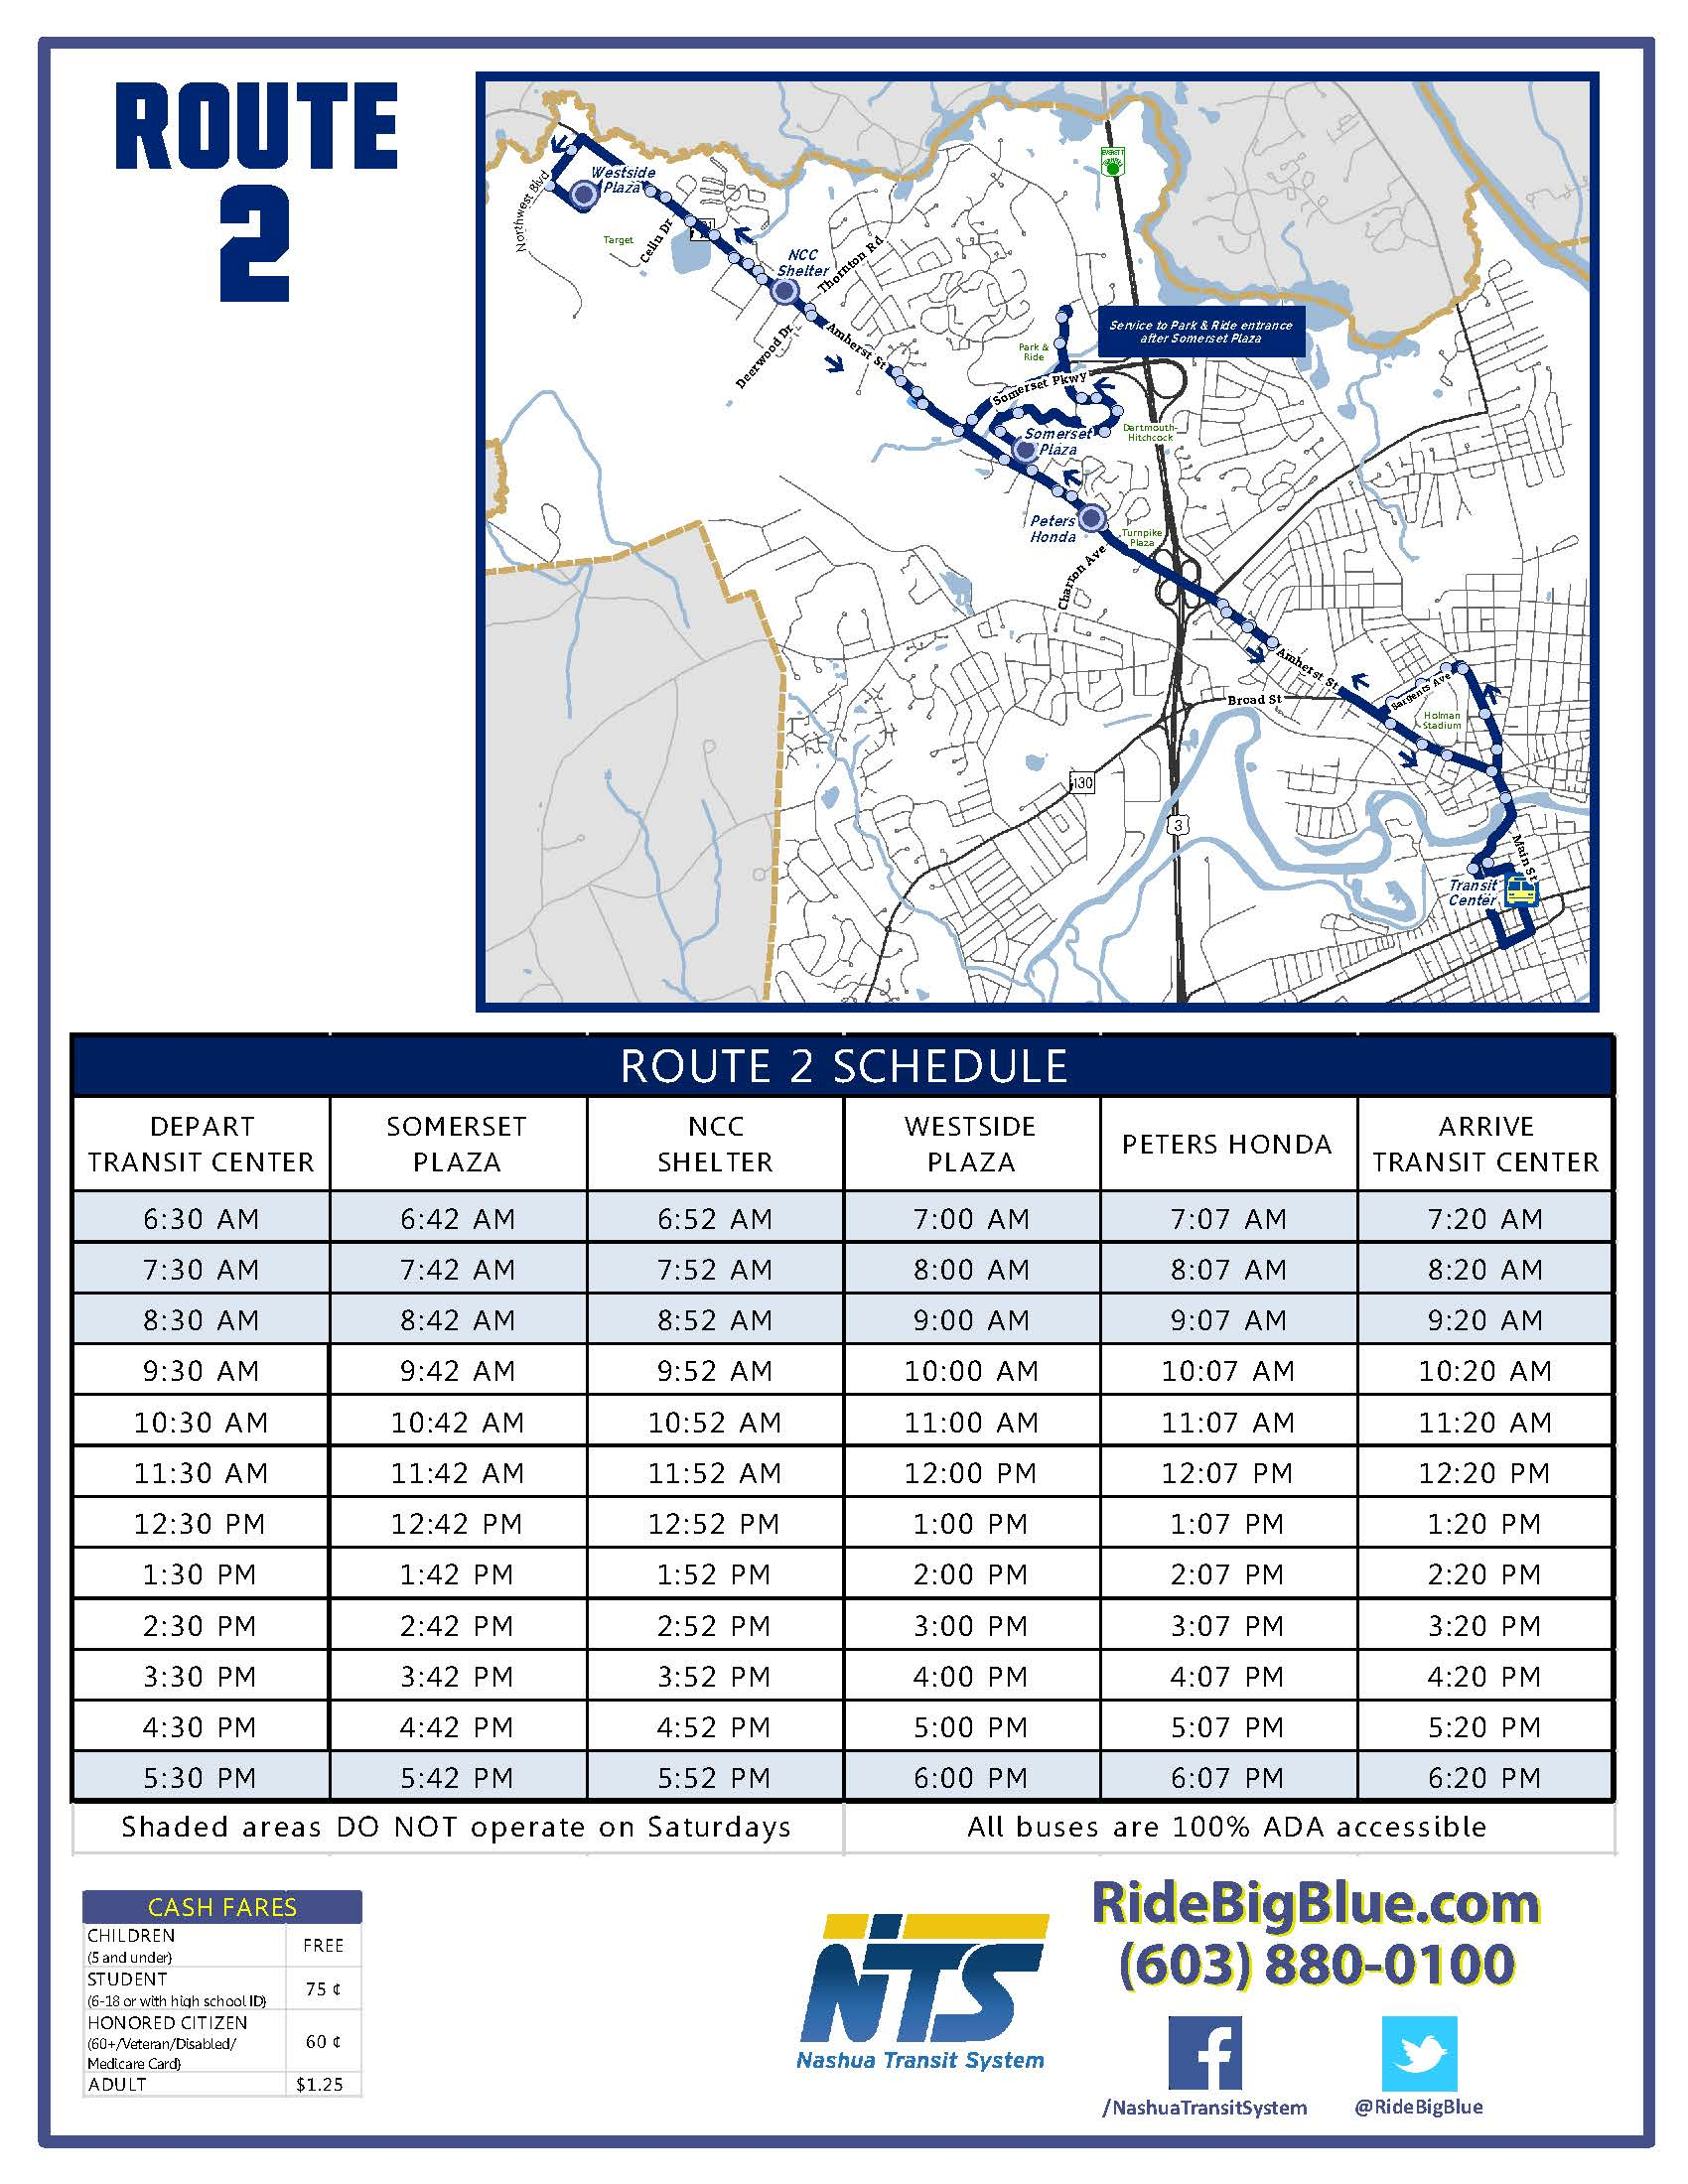 Route 2 Map & Schedule